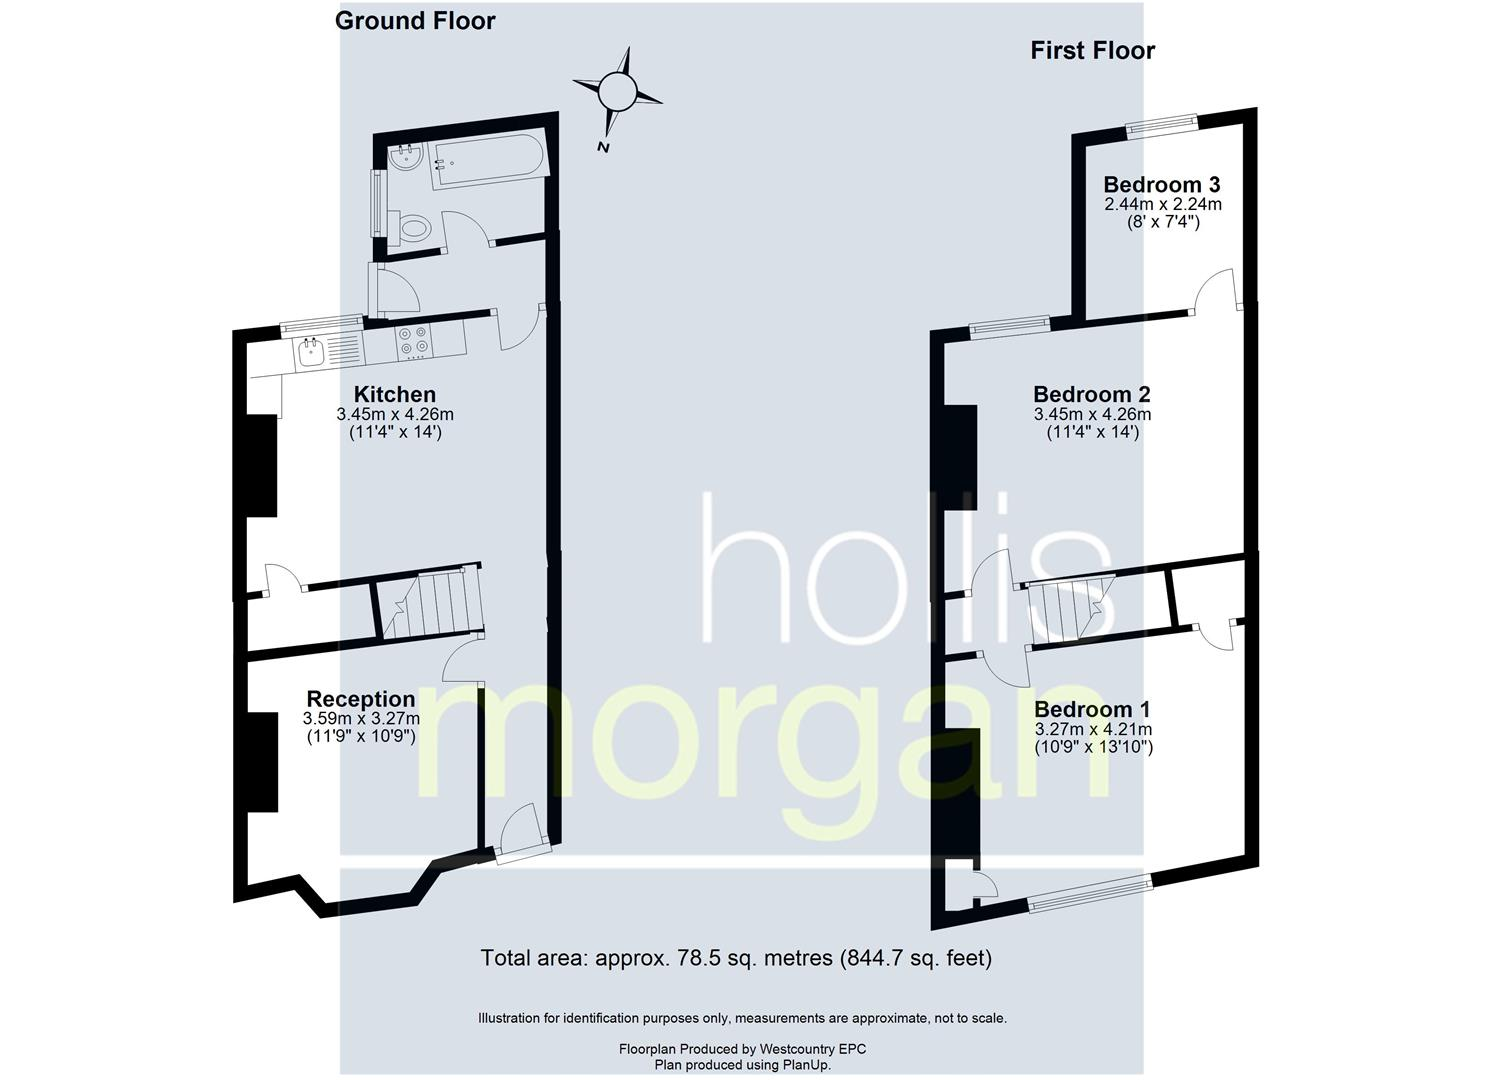 Floorplans For HOUSE FOR MODERNISATION - FISHPONDS